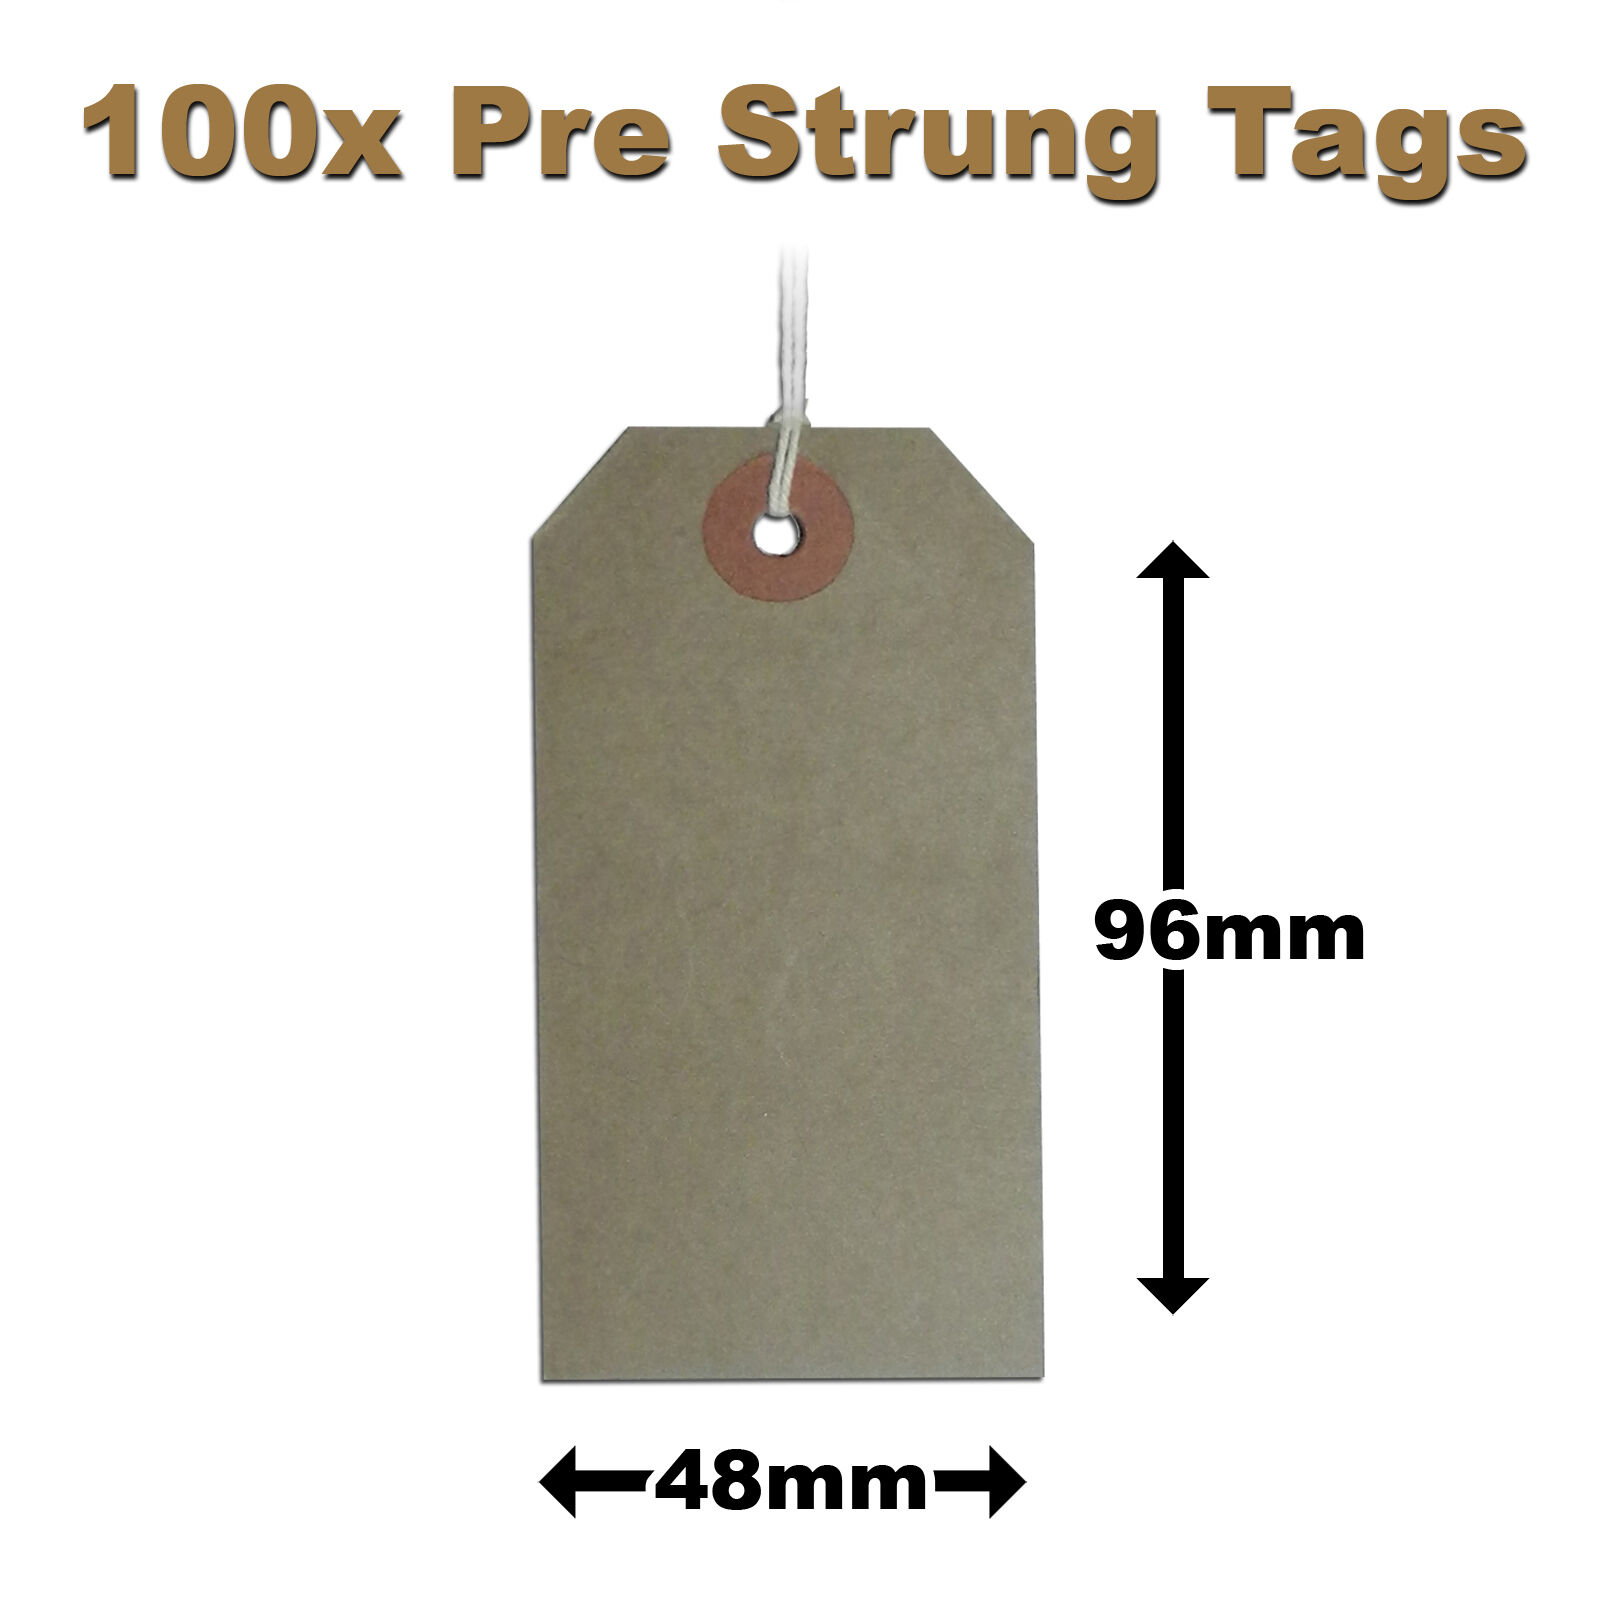 Pre-Strung Brown / Manilla / Buff Price Tags Tickets 96mm x 48mm 3MS x100 (H5)